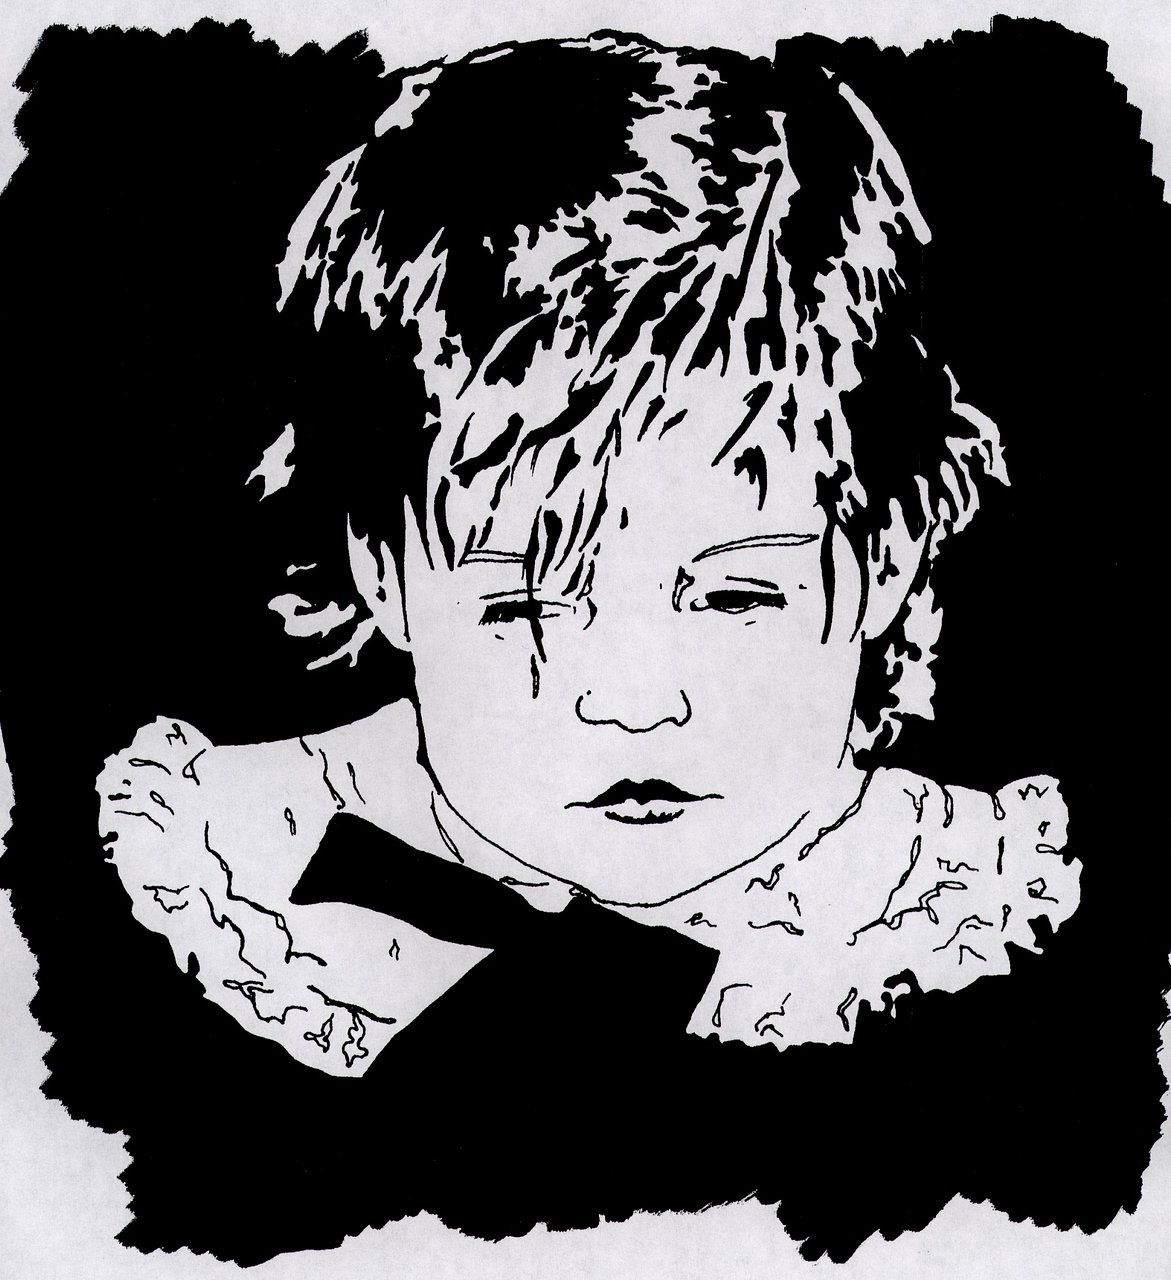 Self Portrait as a Child